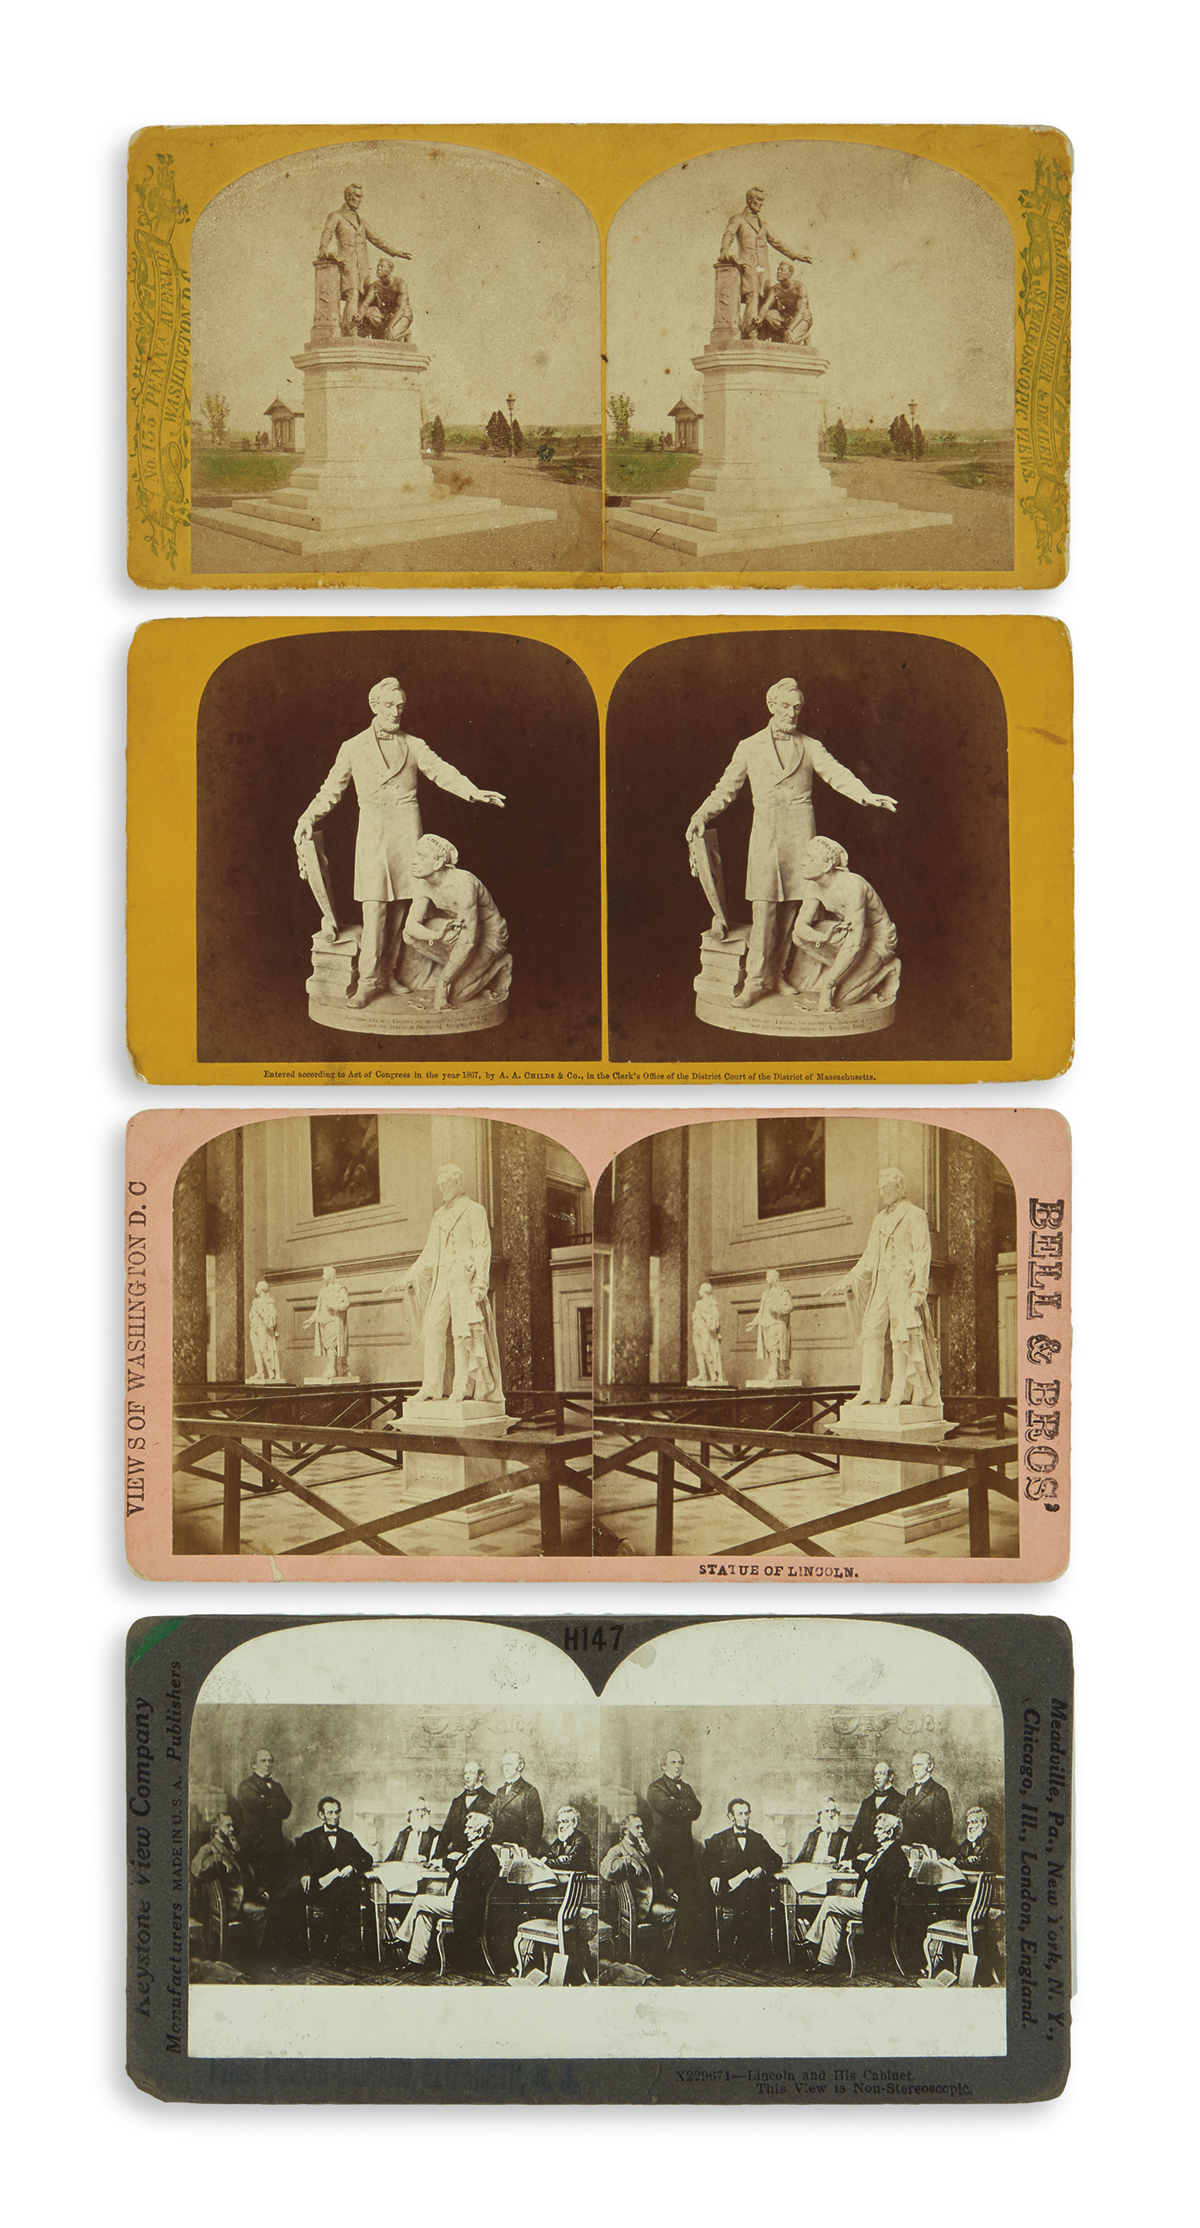 (PHOTOGRAPHY)-Group-of-13-stereoviews-of-scenes-relating-to-